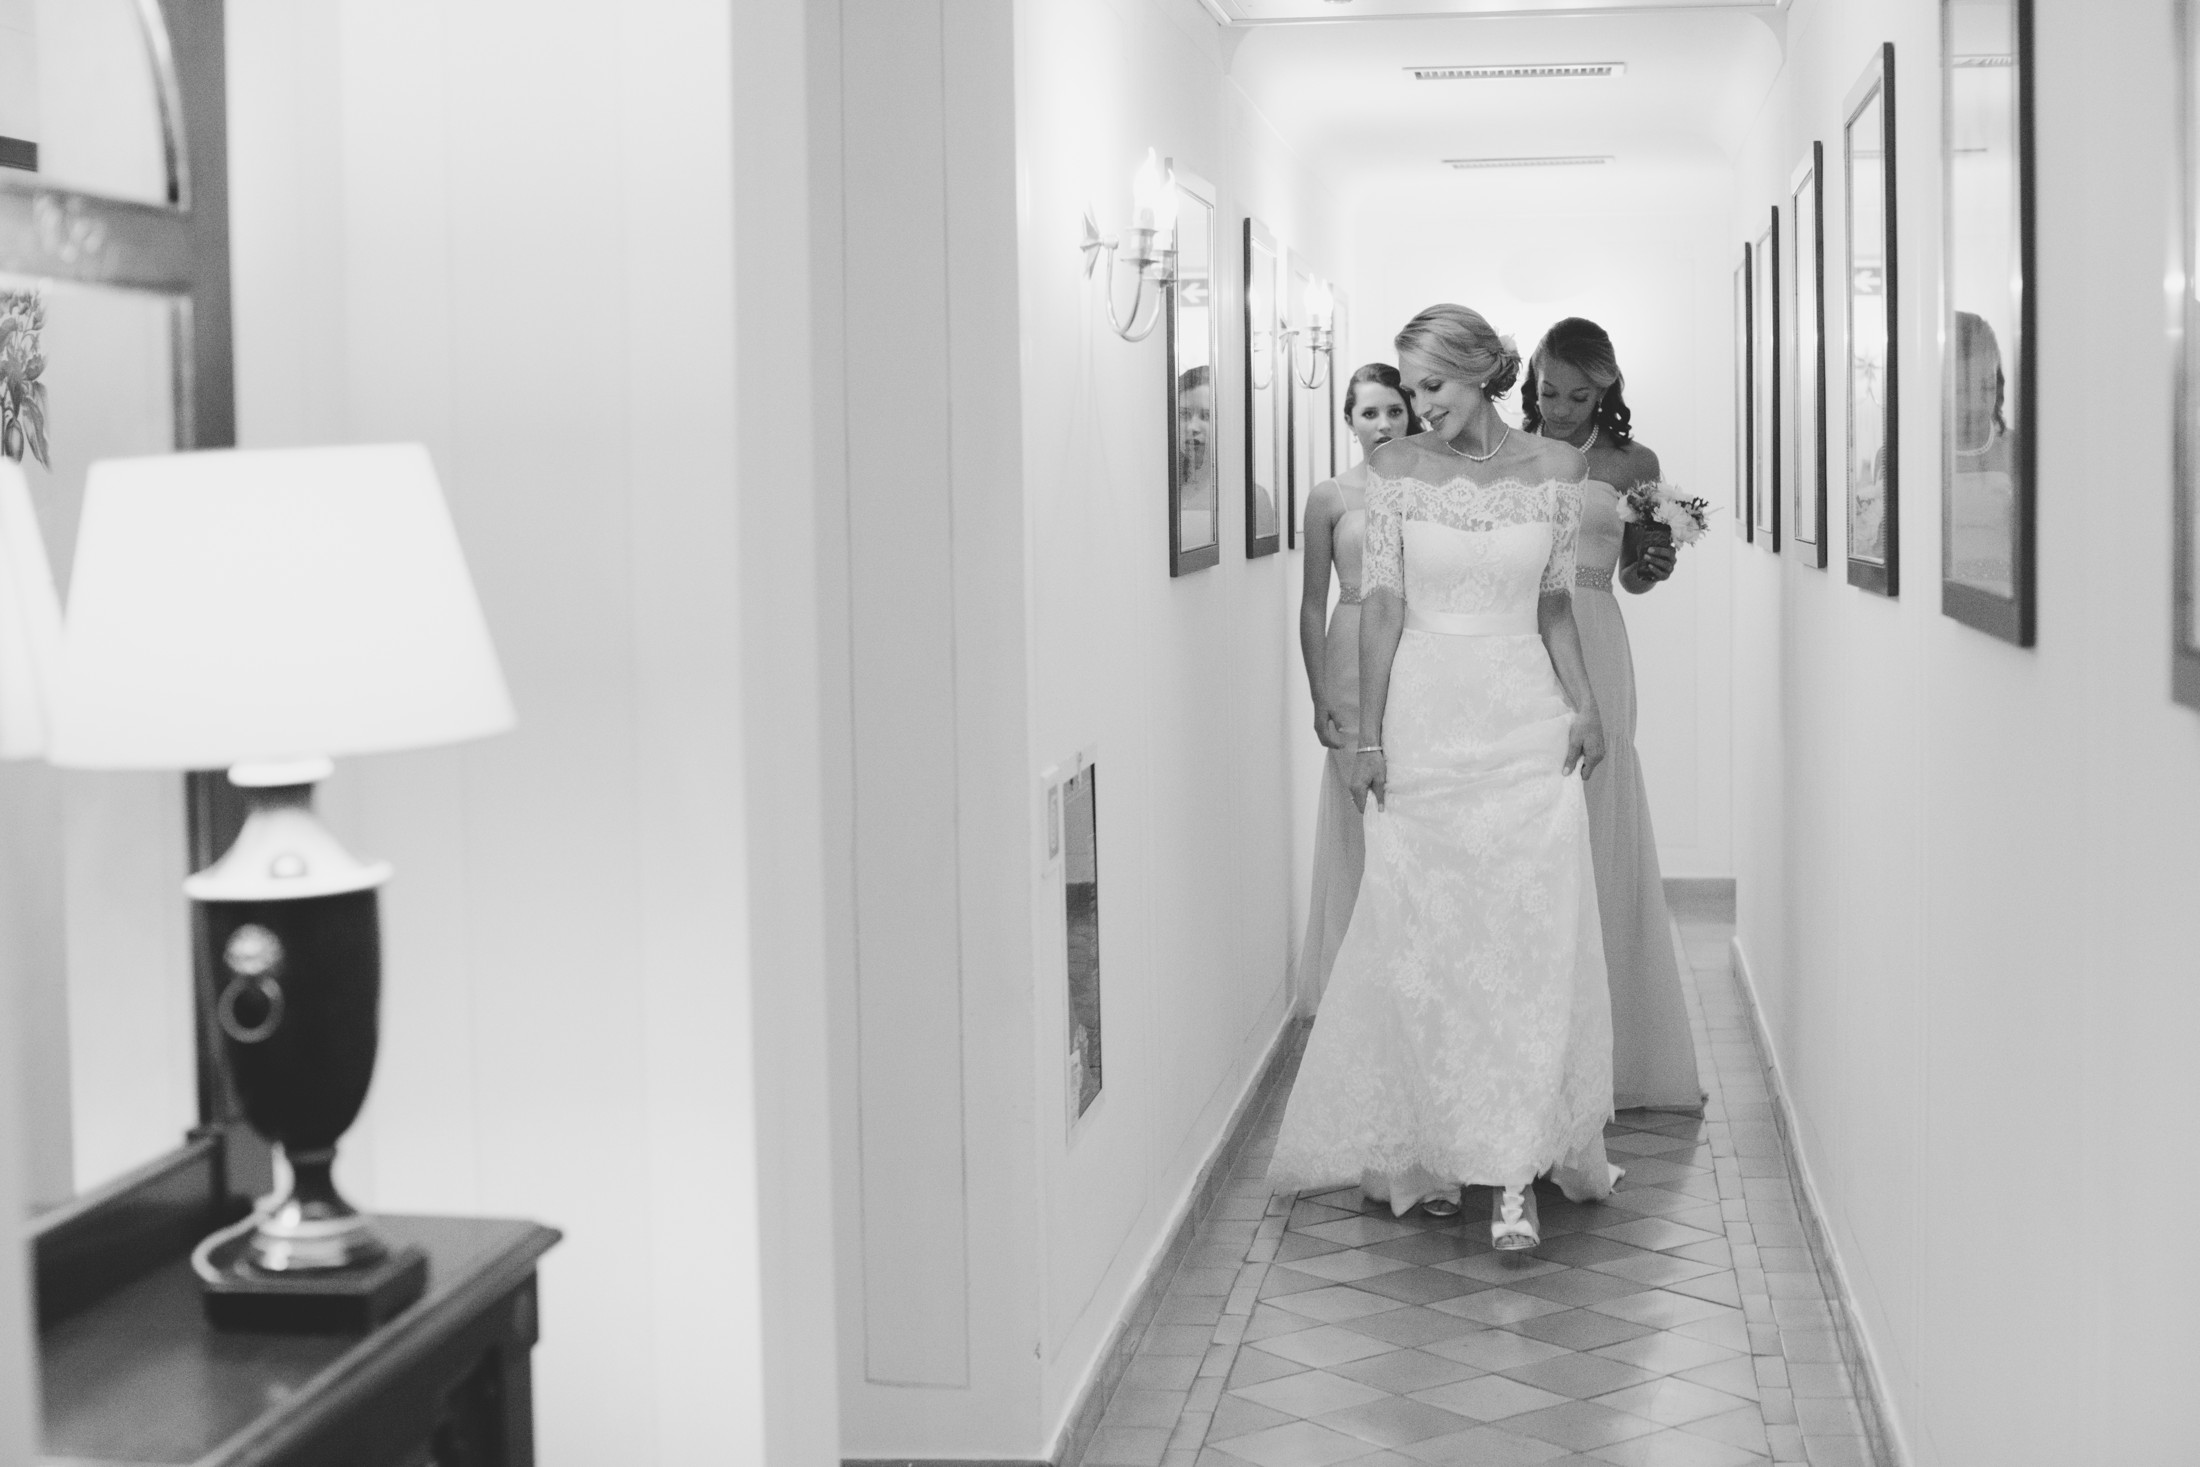 the bride with her two daughters leaving the hotel room in black and white